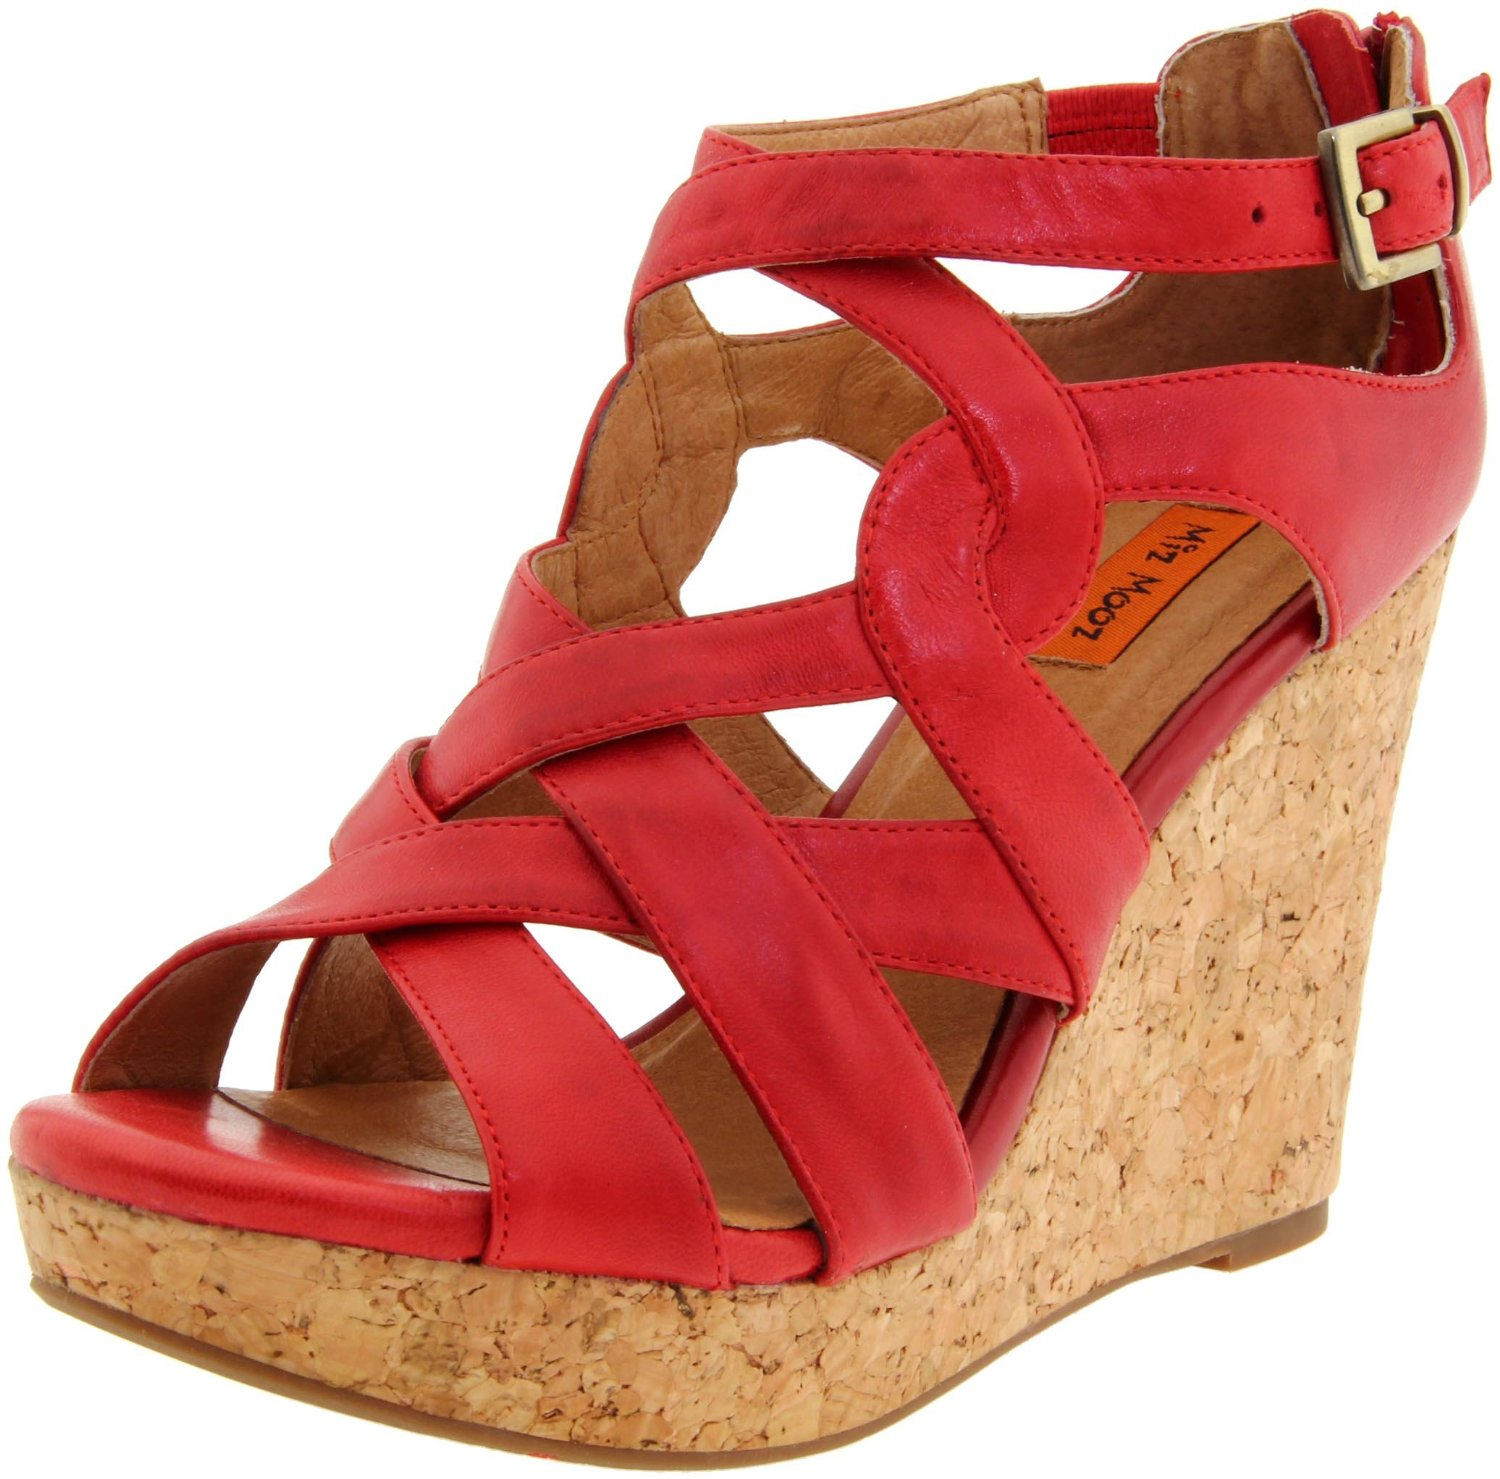 Find great deals on eBay for red wedge shoe. Shop with confidence.